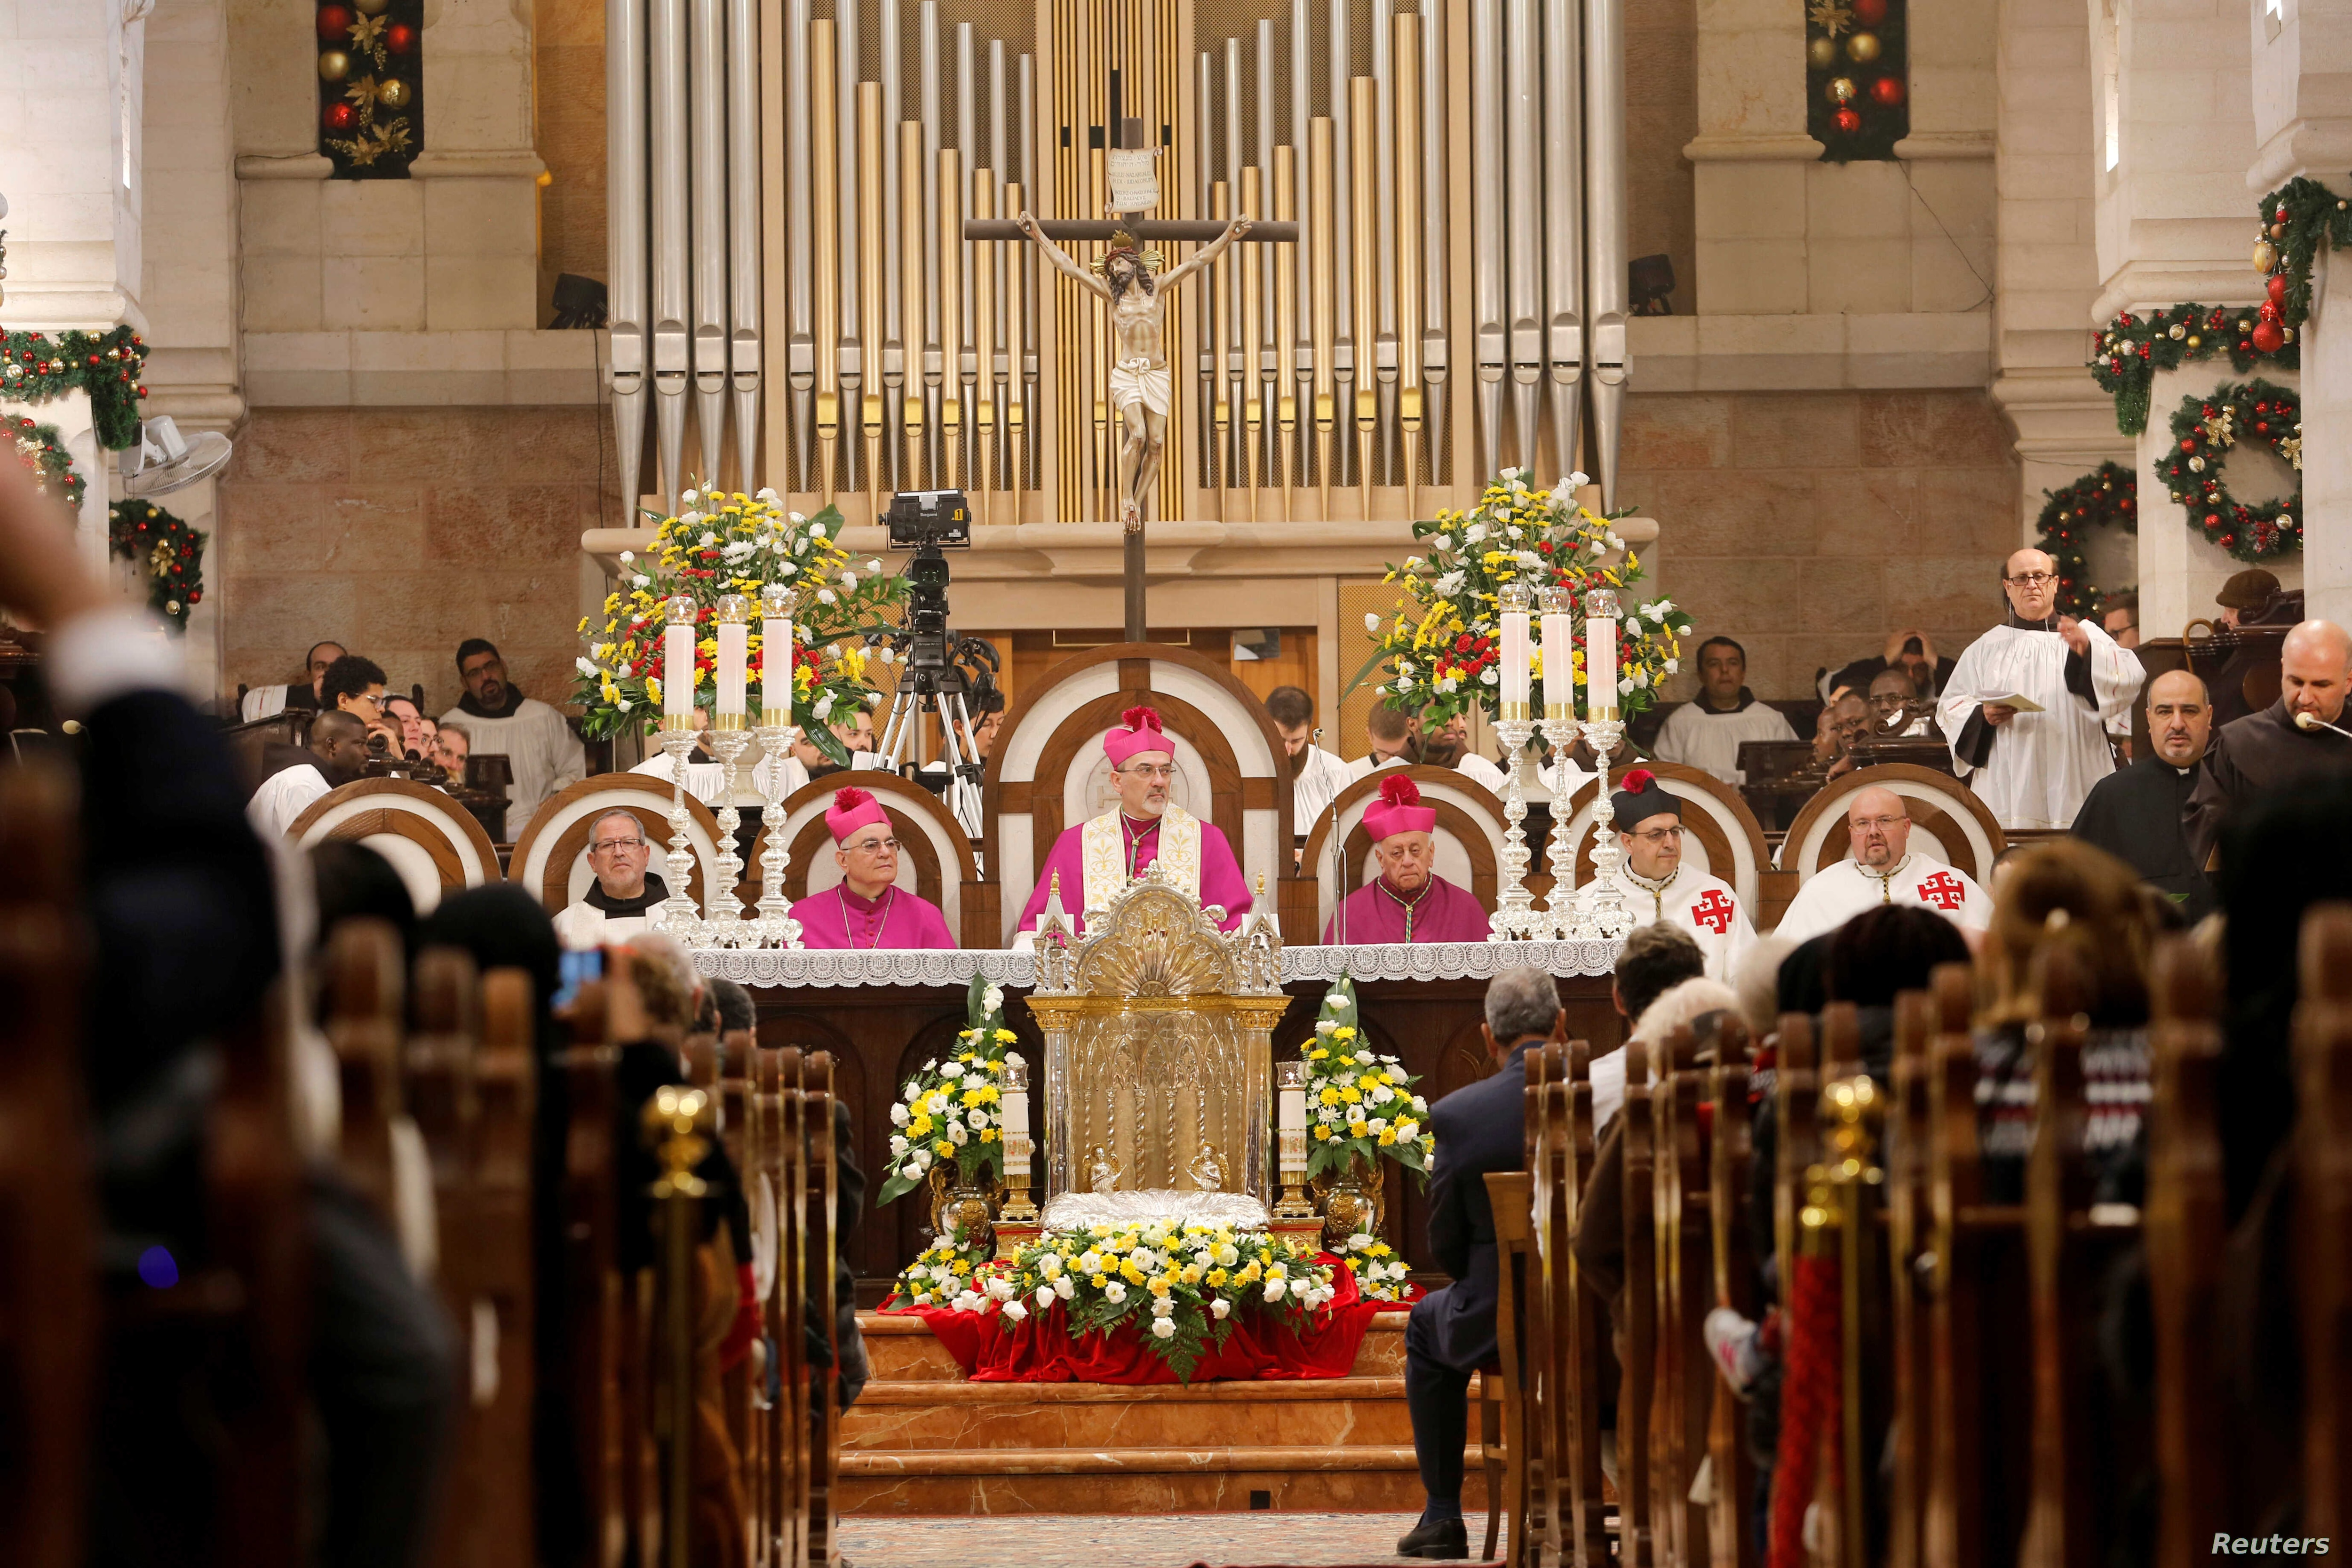 The acting Latin Patriarch of Jerusalem Pierbattista Pizzaballa leads a mass at the Church of the Nativity on Christmas eve in…